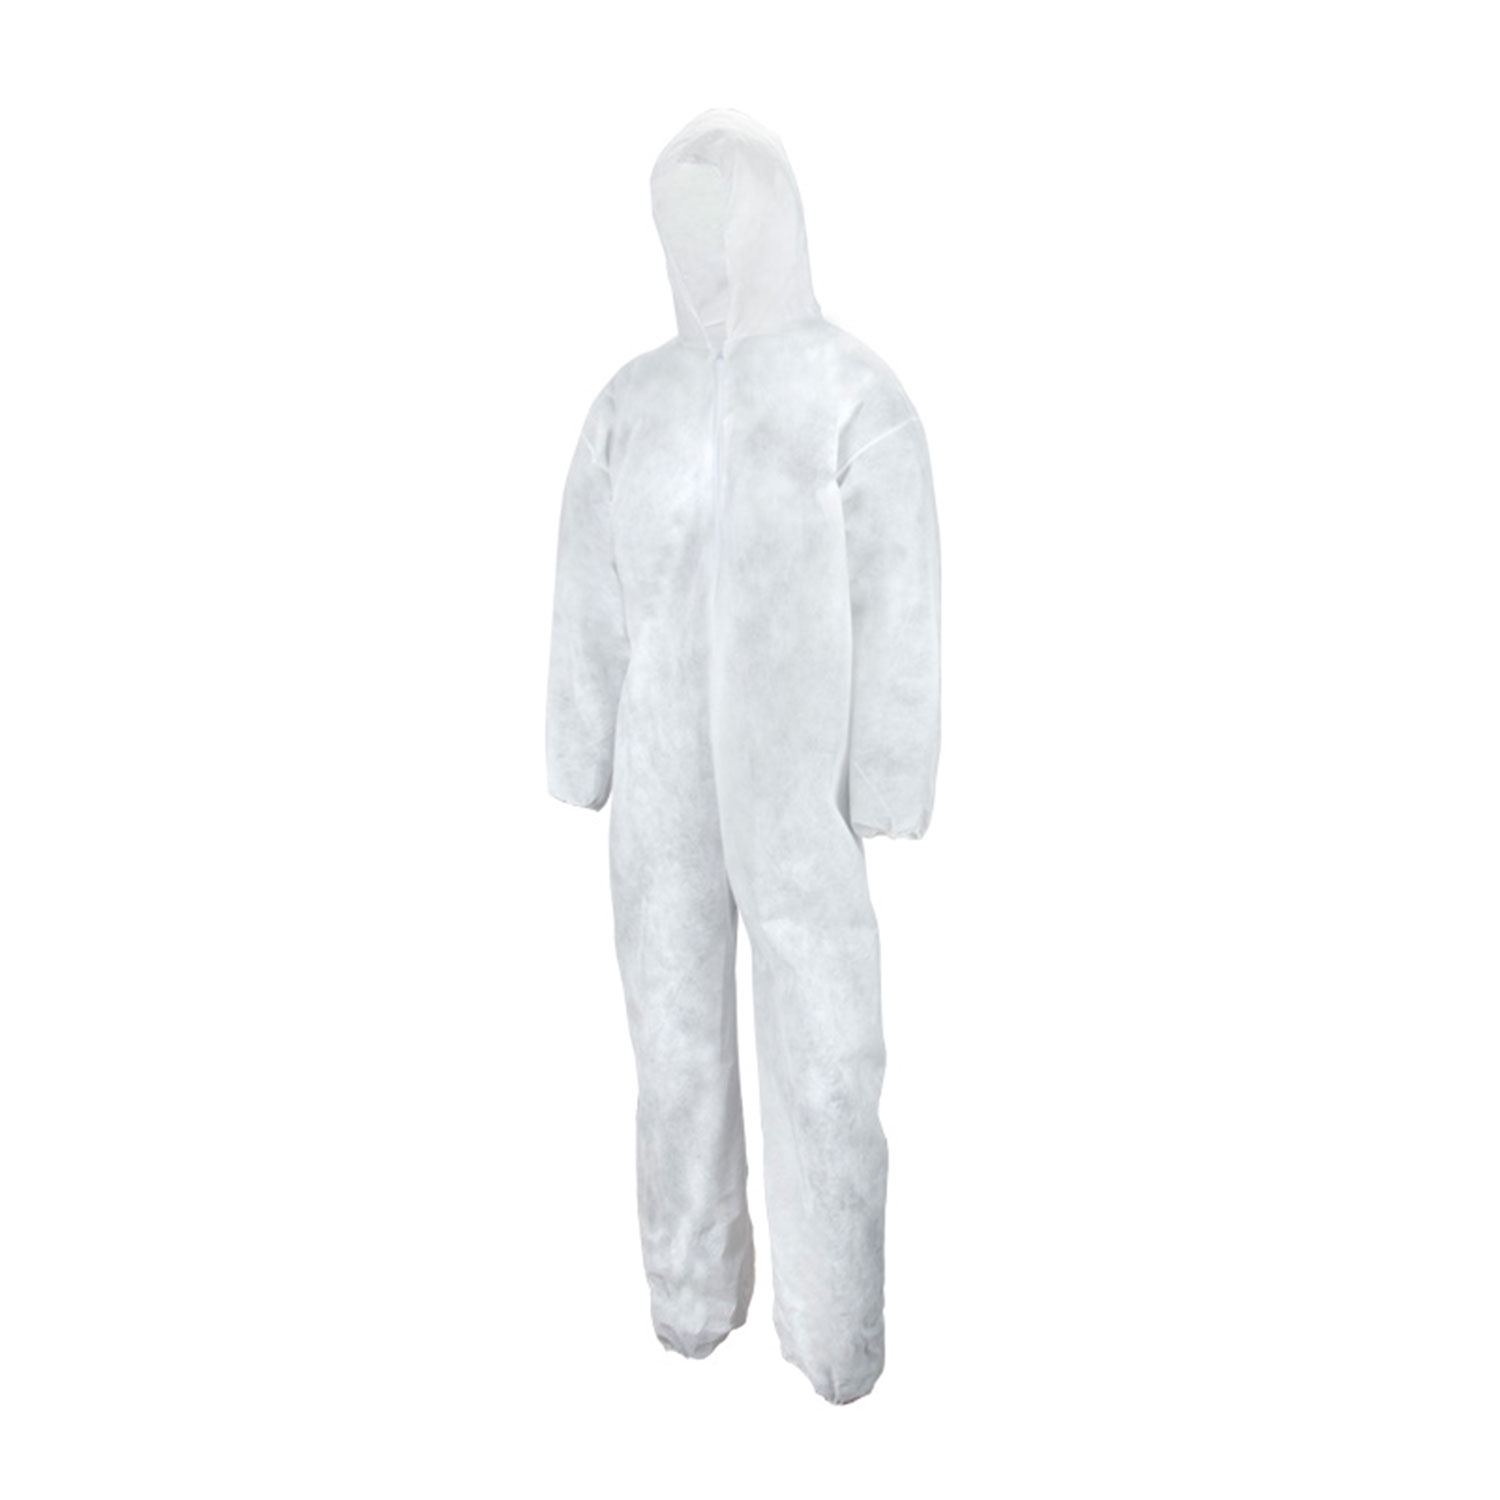 Heavy Duty Disposable Polypropylene Coveralls - 25/case